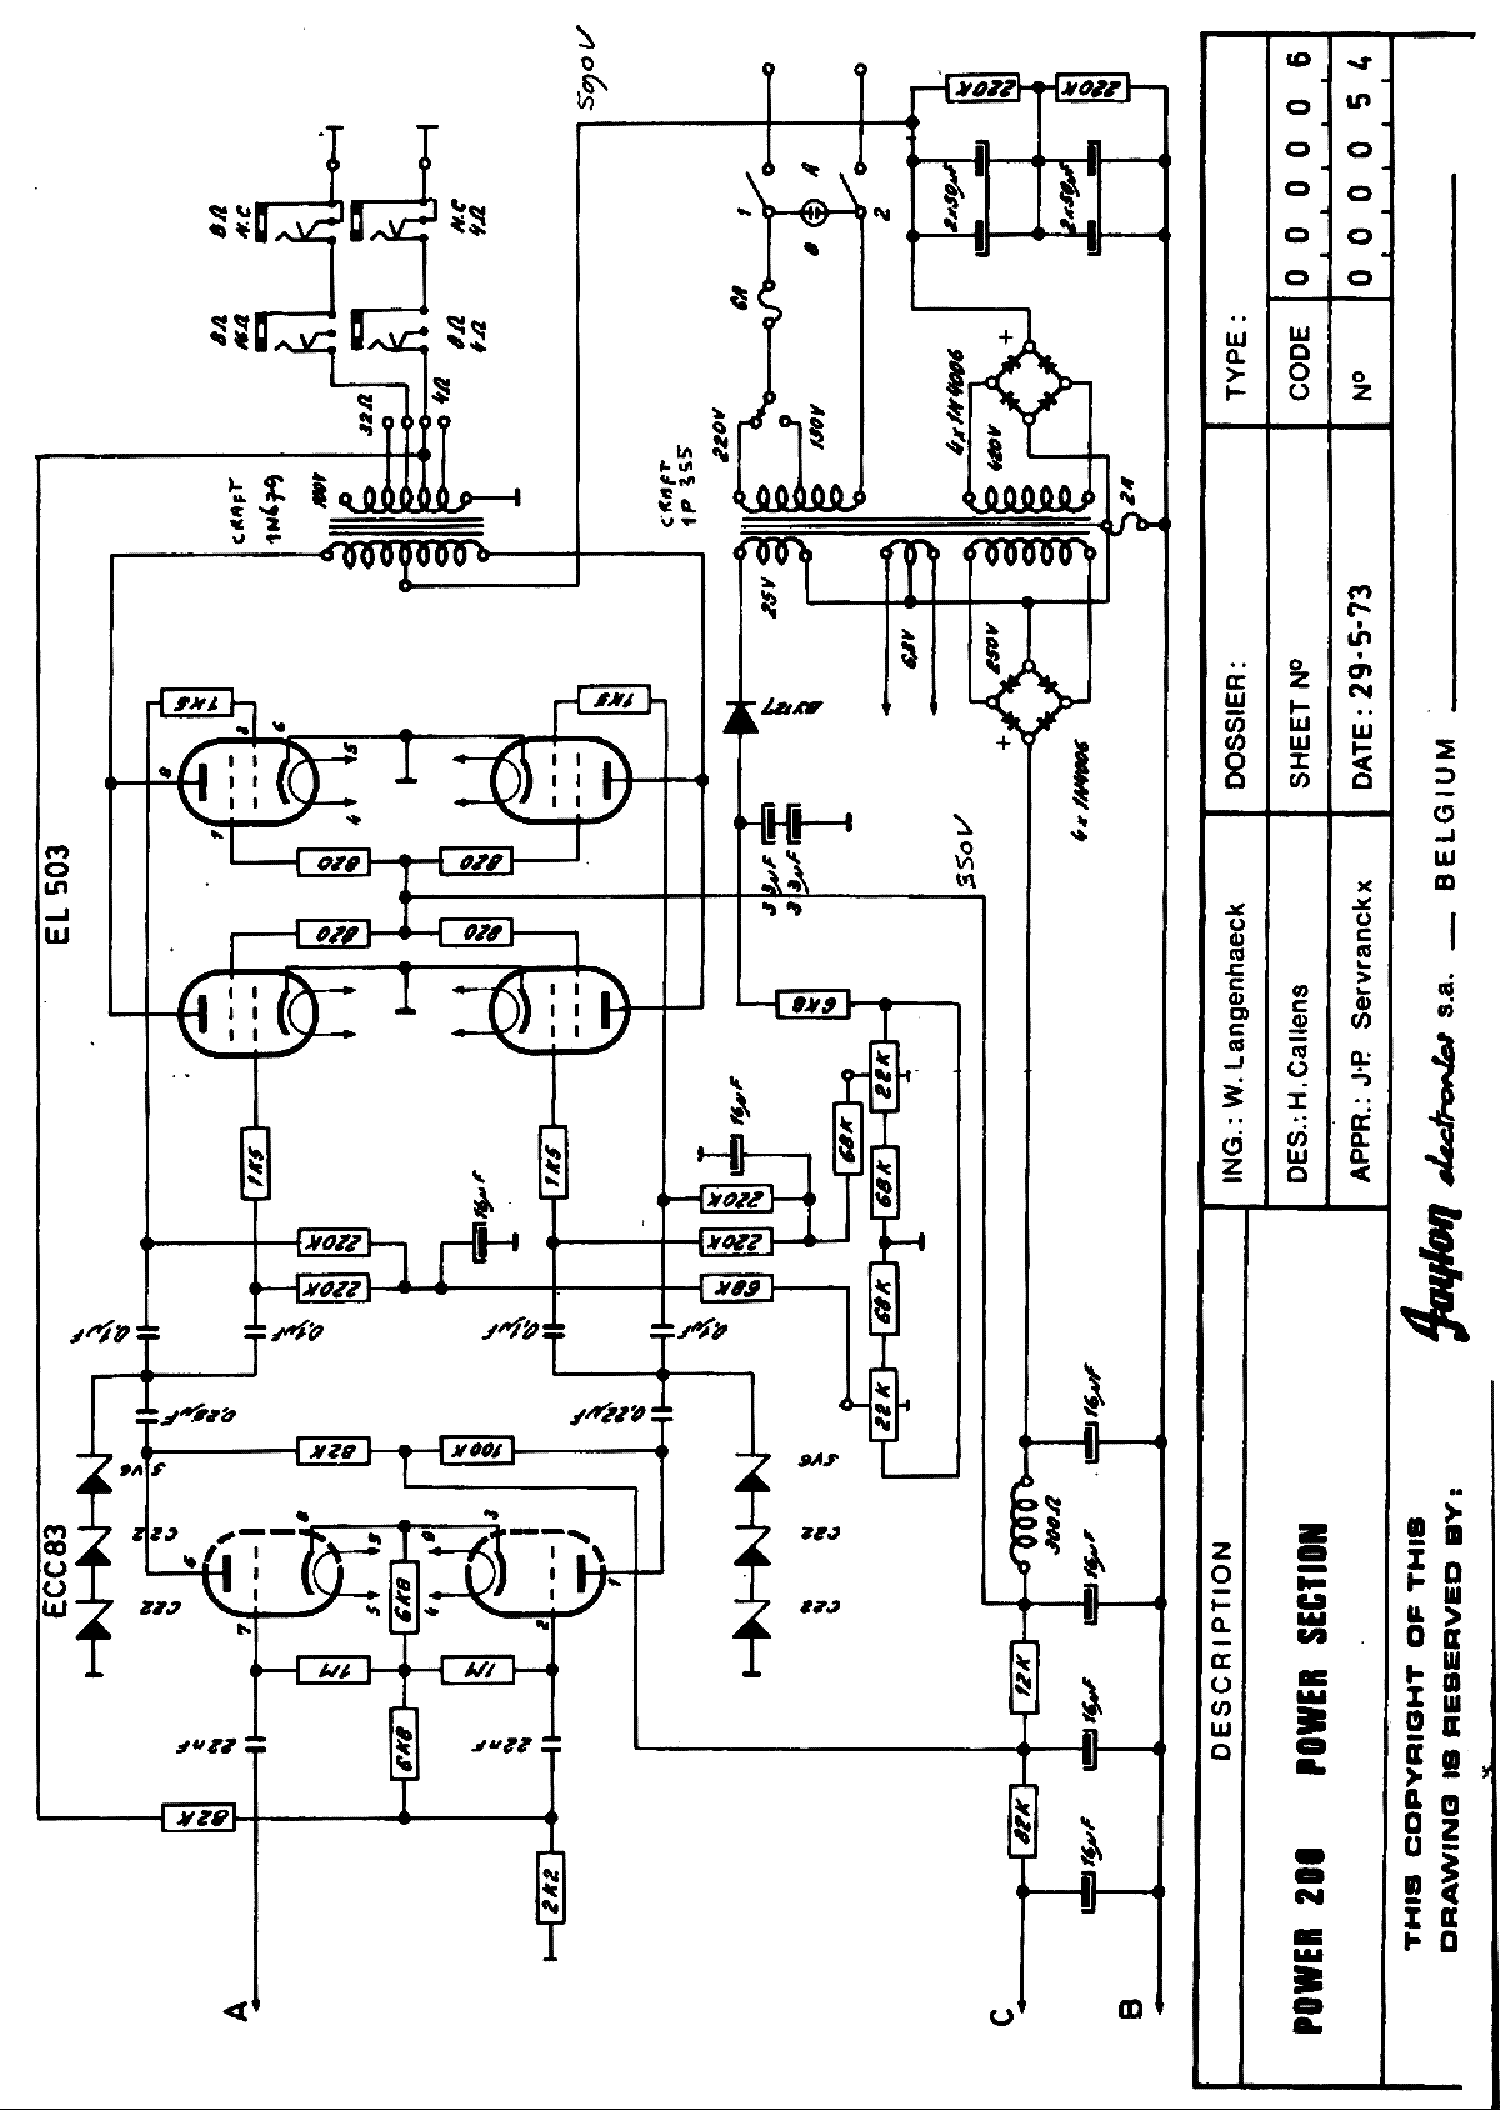 Ibanez Ex Series Wiring Diagram